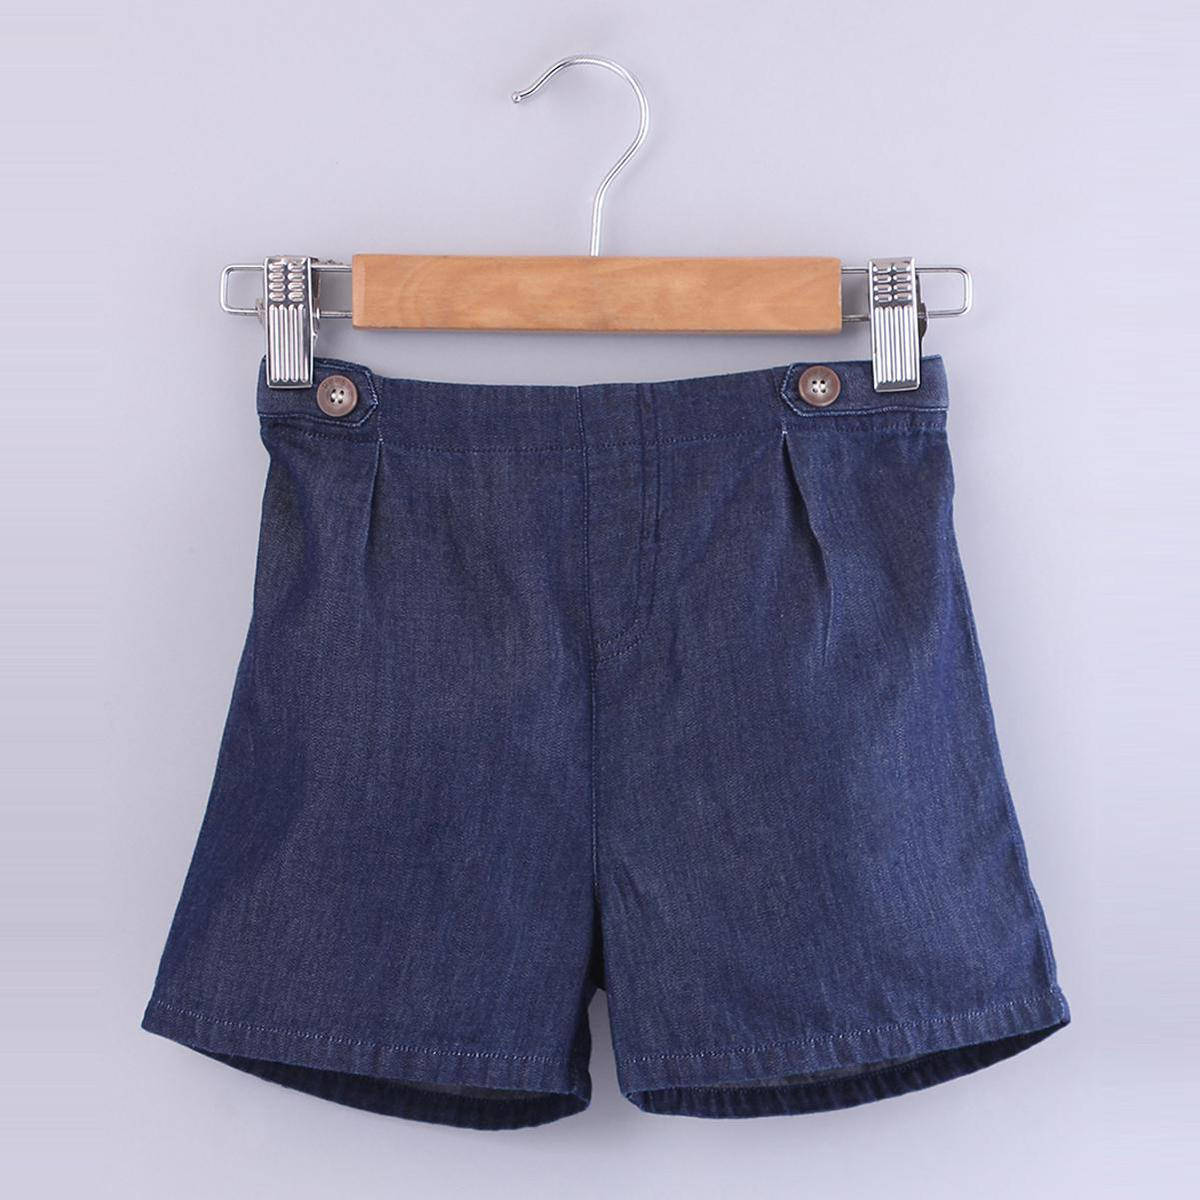 Beebay - Blue Colored Tab Detail Denims Cotton Shorts For Boys